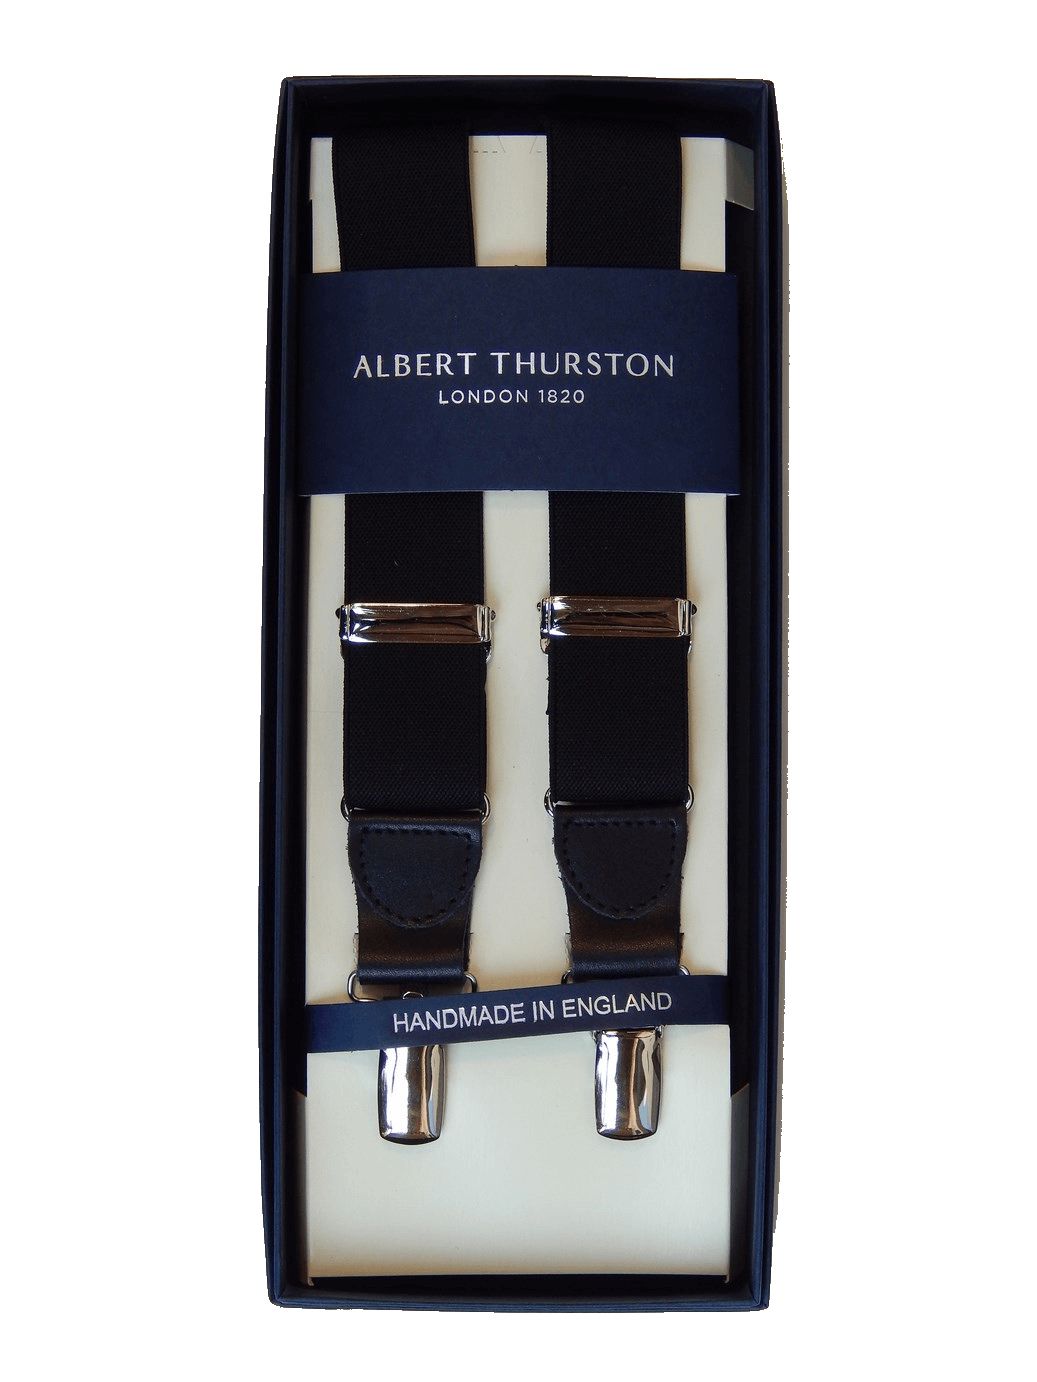 Clip button brace. Albert thurston braces black